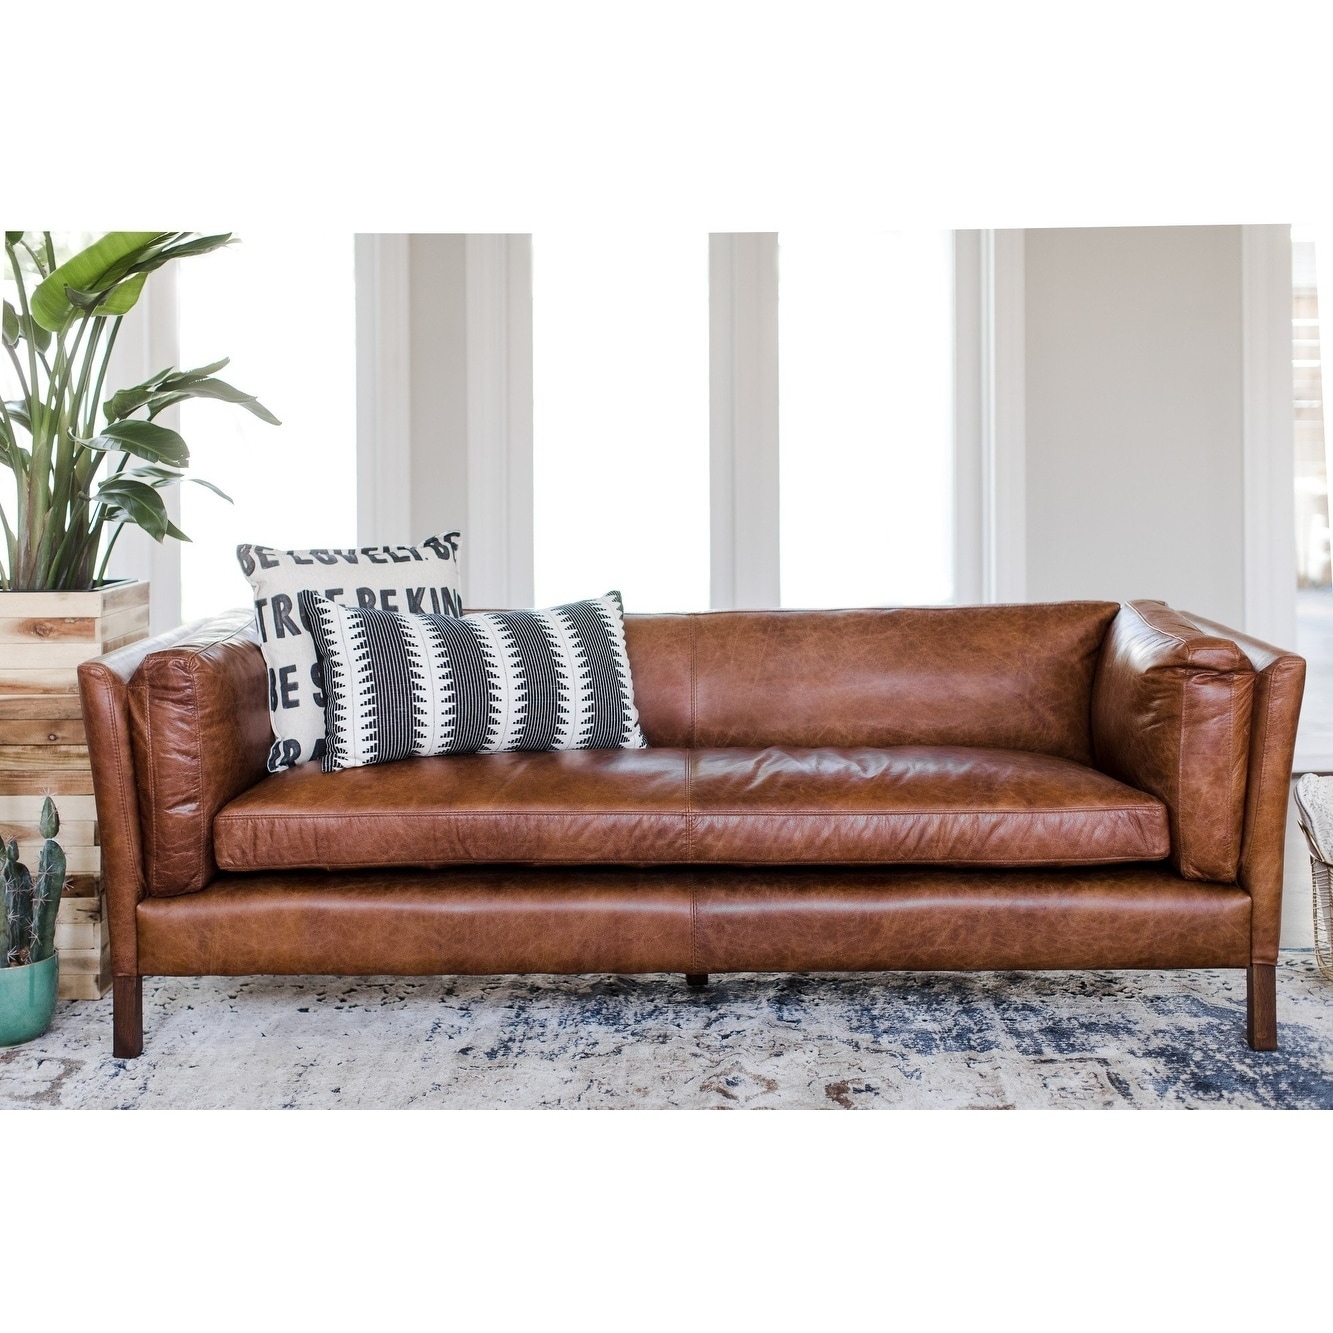 Couch Sofa Modern Leather Sofa Mid Century Modern Couch Top Grain Brazilian Leather Cognac Brown